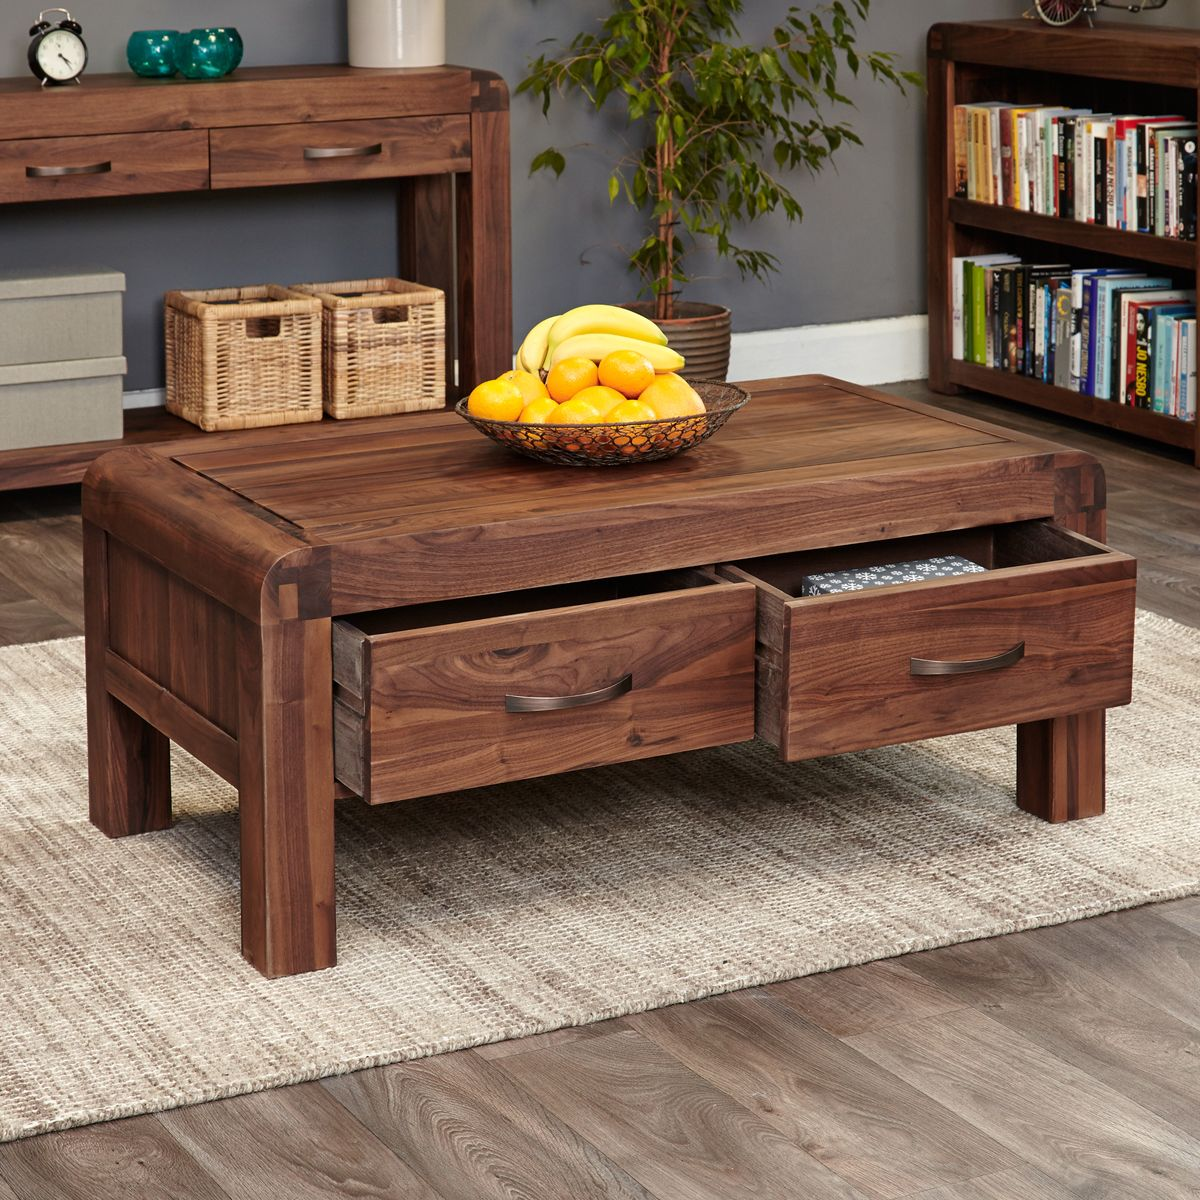 Indore Coffee Table With 6 Drawers: Shiro Walnut Four Drawer Coffee Table